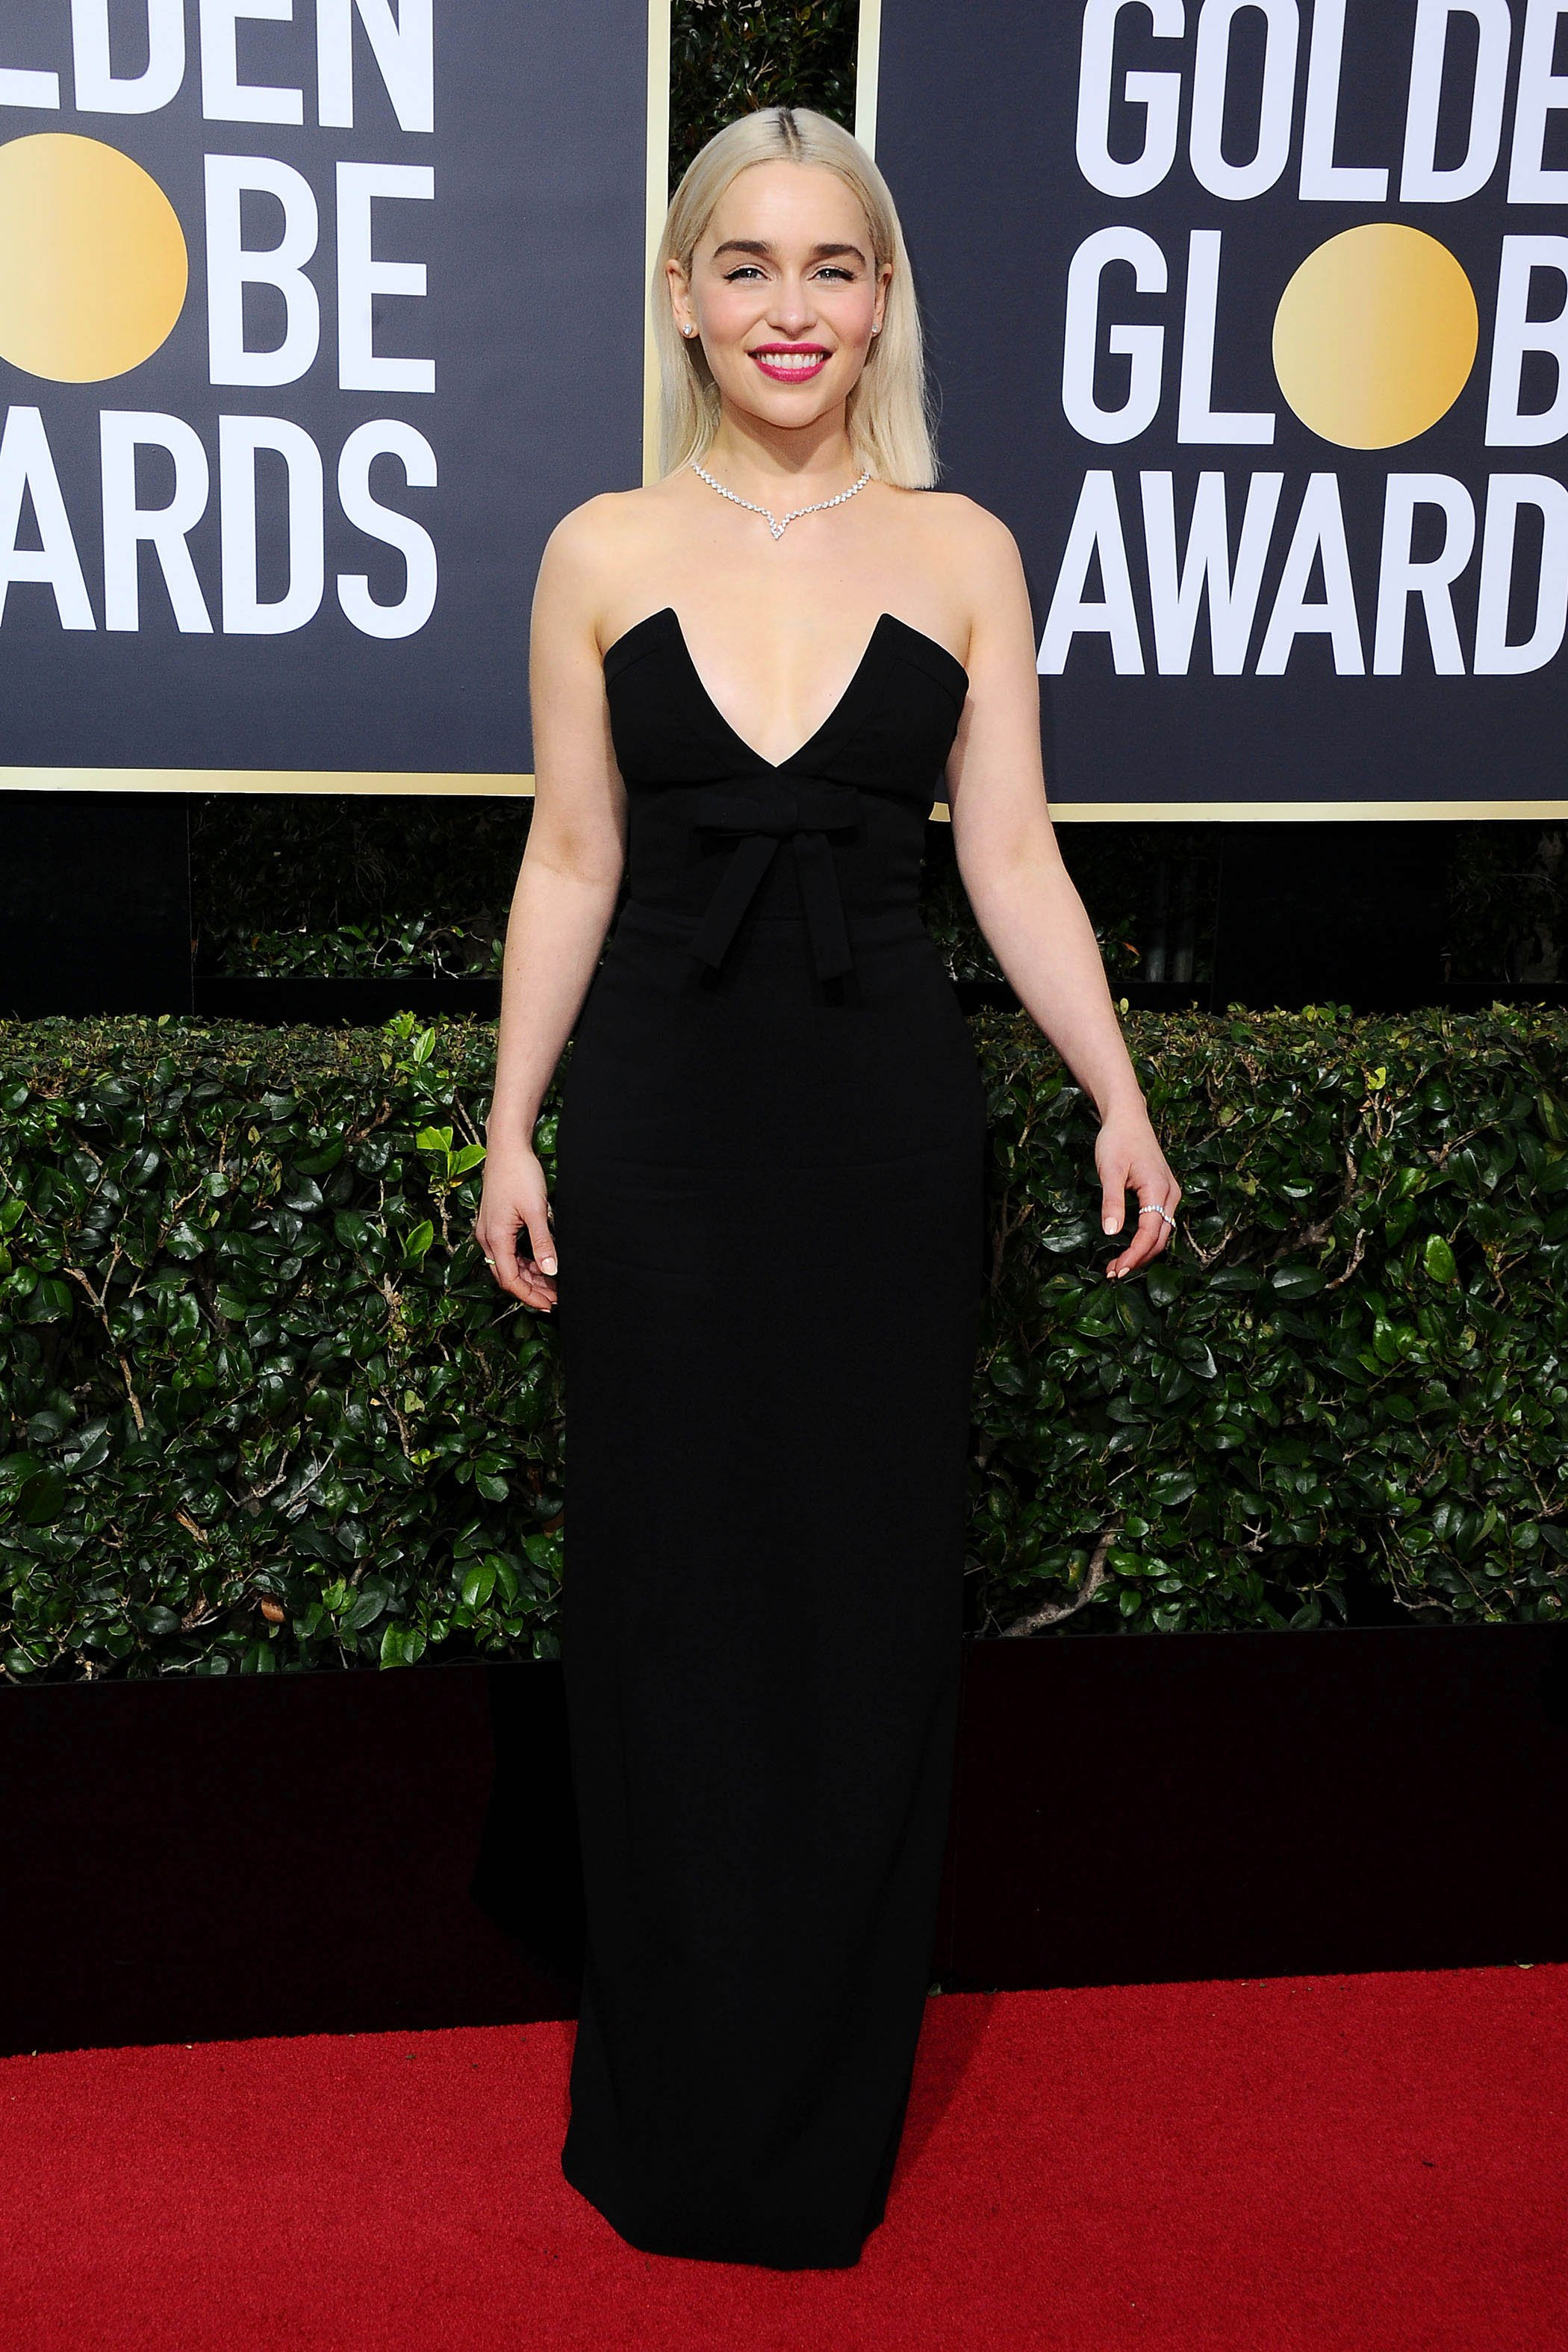 , Beverly Hills, CA -20180107 - The 75th Golden Globe Awards - Arrivals at The Beverly Hilton  -PICTURED: Emilia Clarke -, Image: 359502870, License: Rights-managed, Restrictions: , Model Release: no, Credit line: Profimedia, INSTAR Images